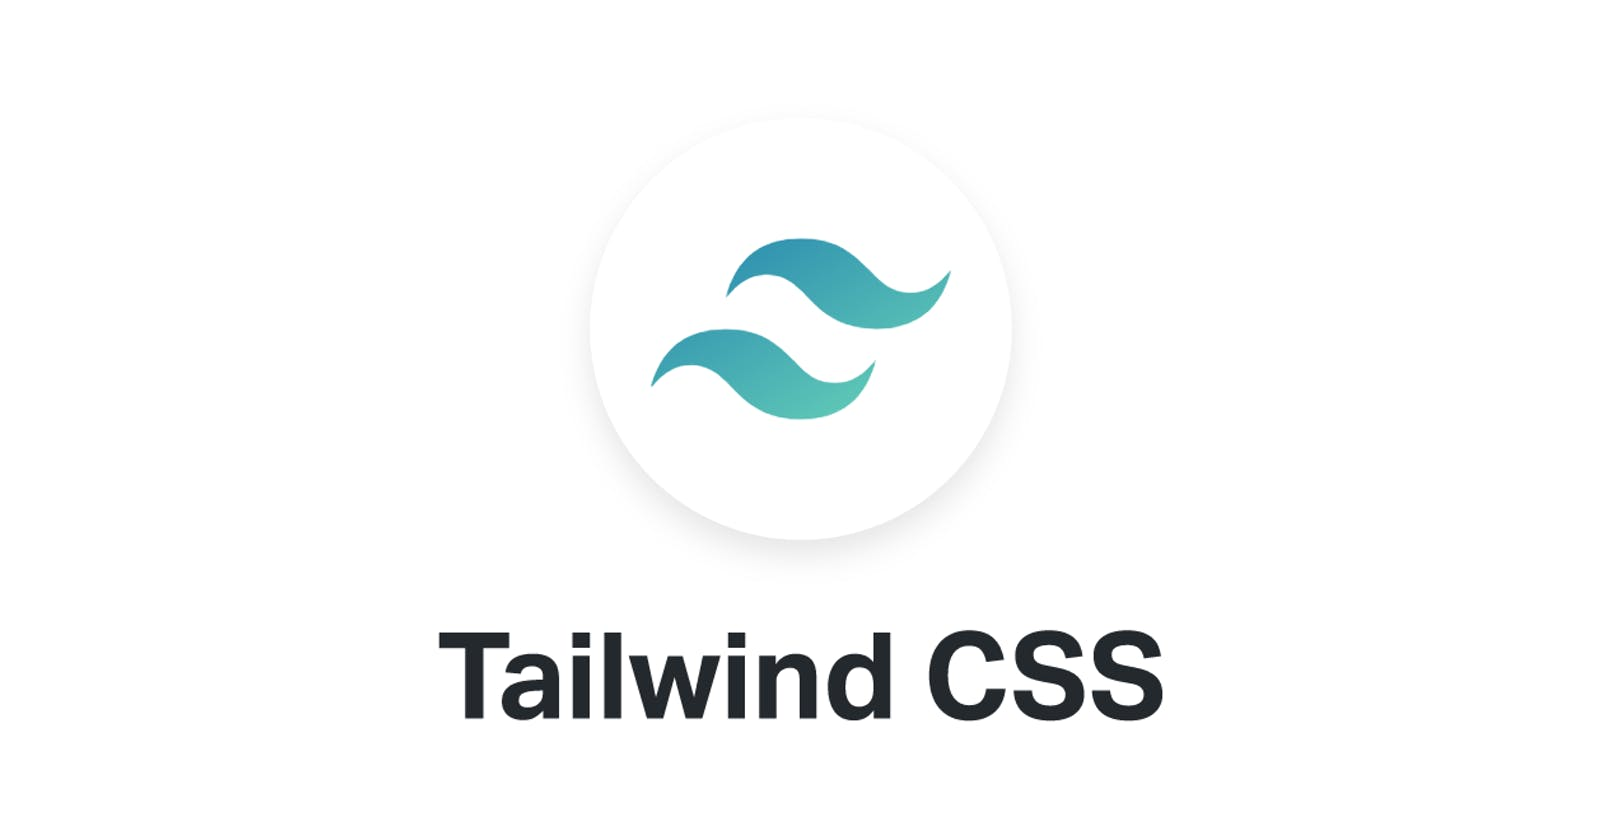 Getting Started with TailwindCSS - An Overview and Walkthrough Tutorial